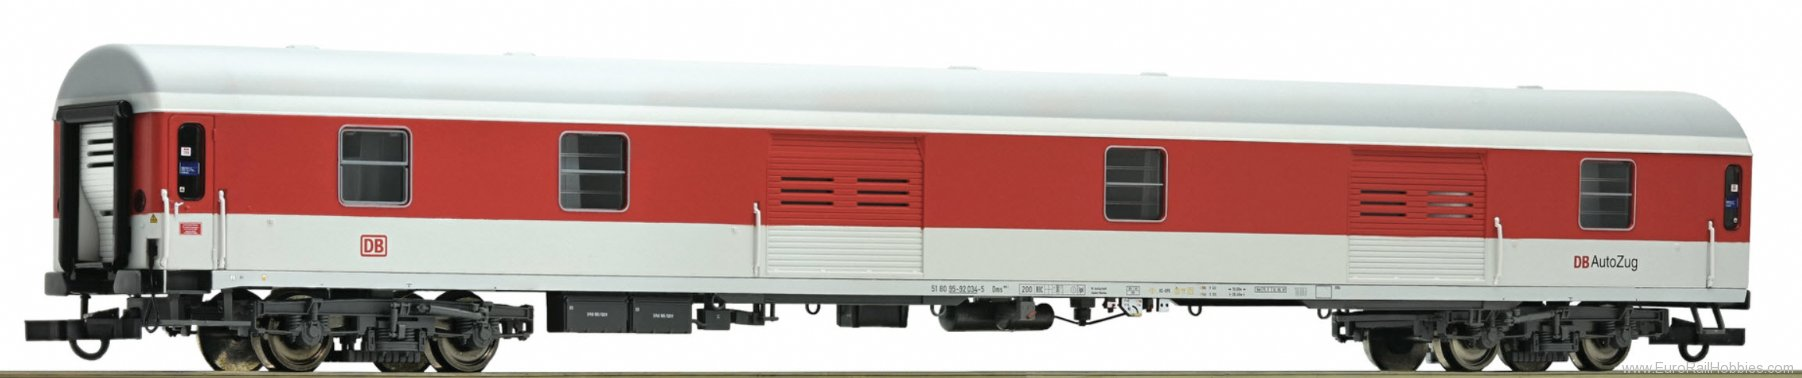 Roco 64914 Luggage car DB-Autozug, DB-AG